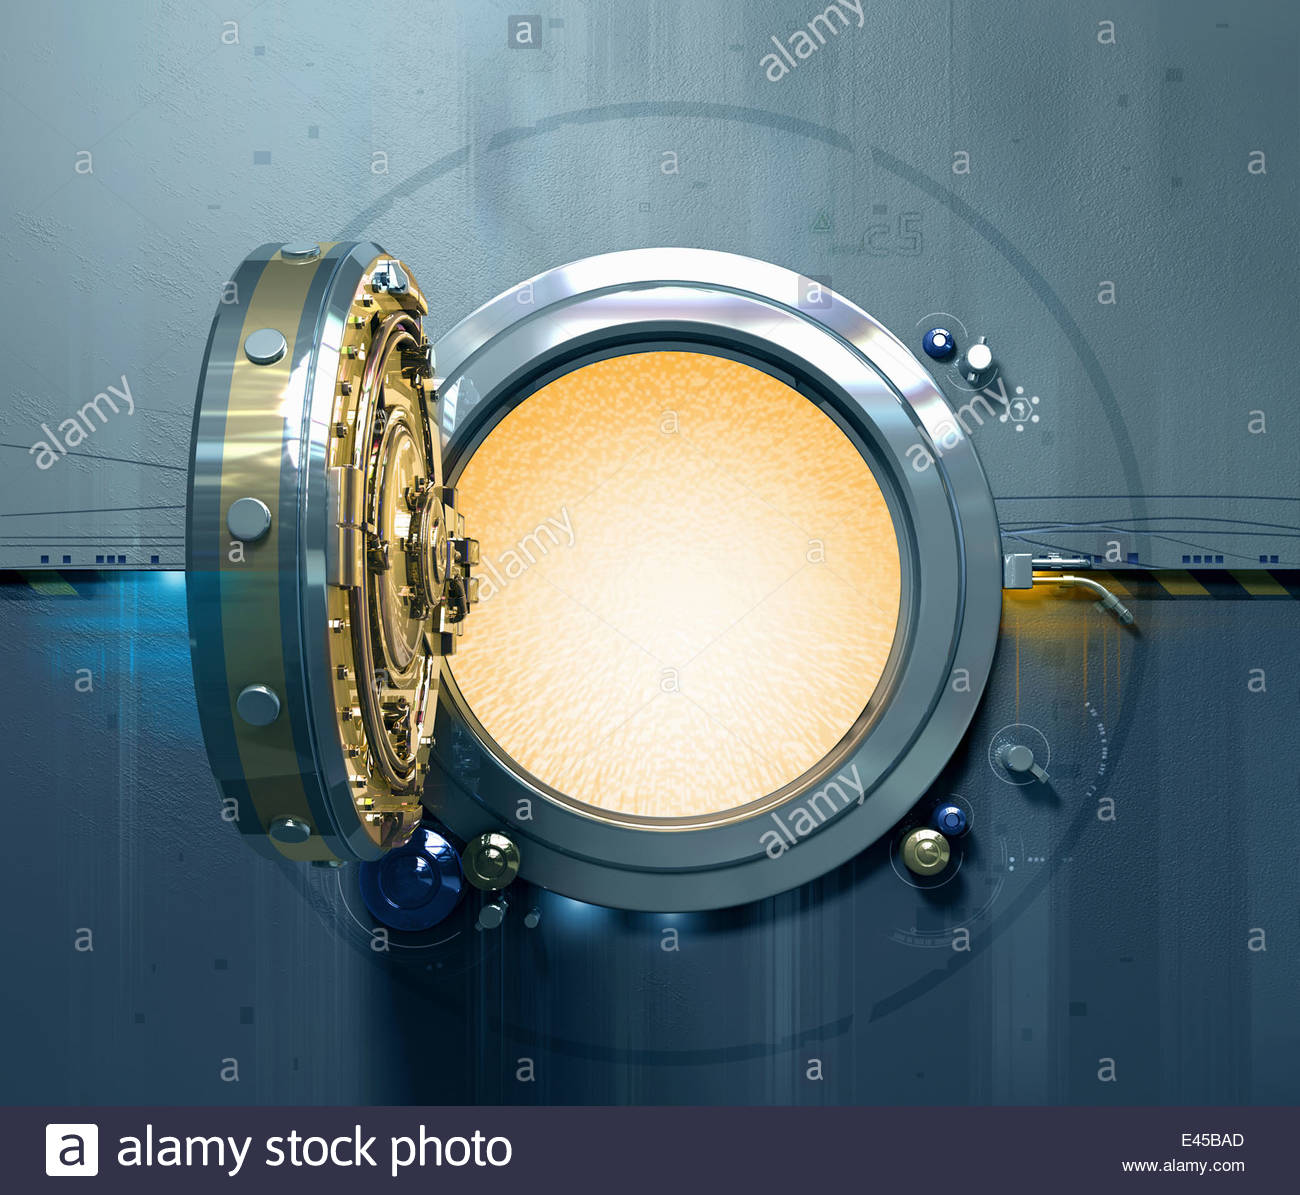 Open vault door with glowing light inside - Stock Image